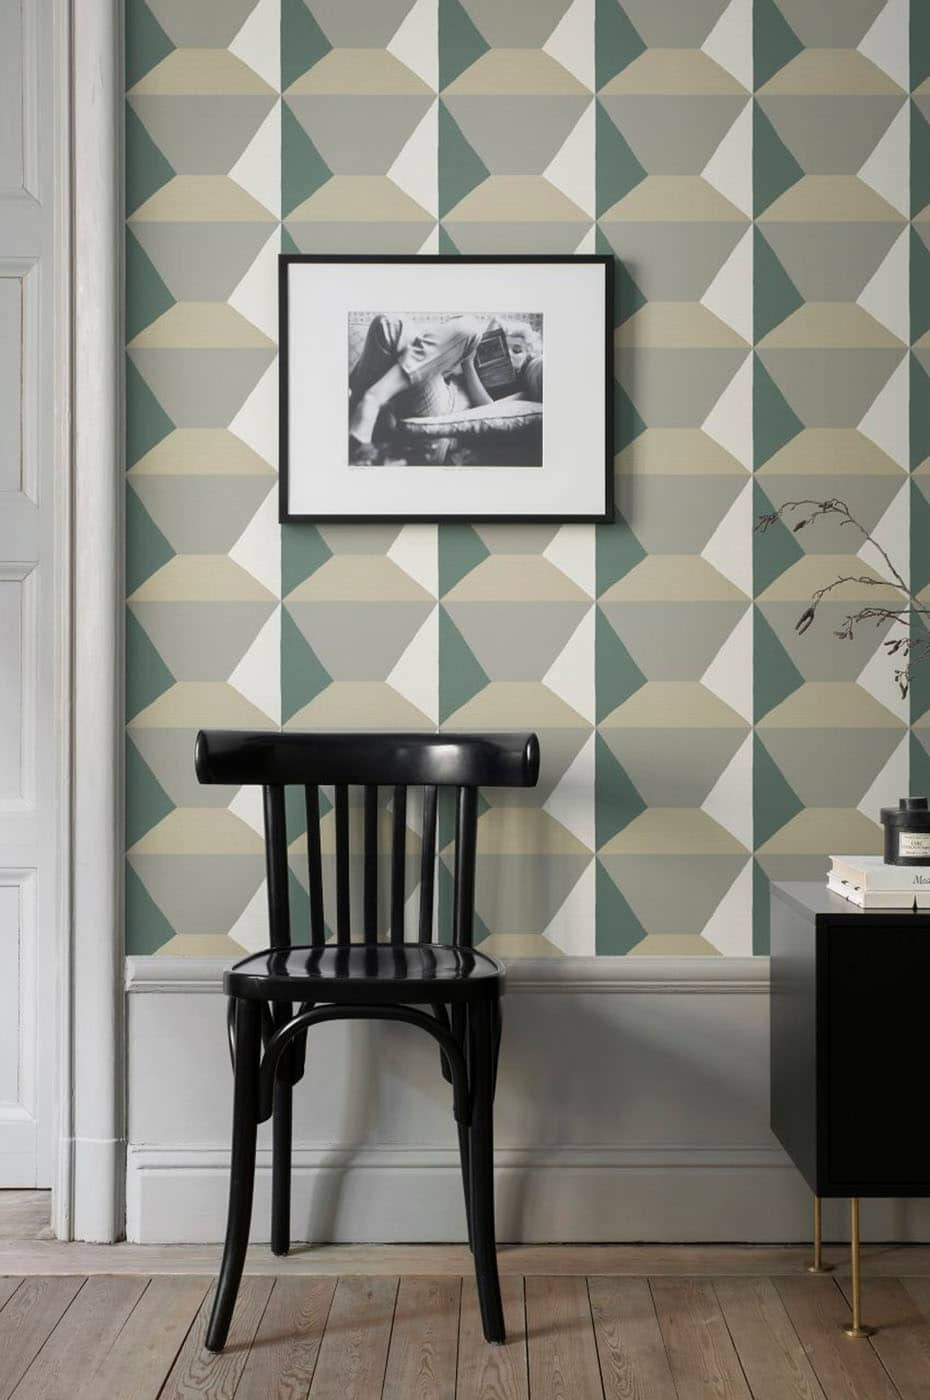 Ilse green geometric wallpaper by Sandberg wallpaper